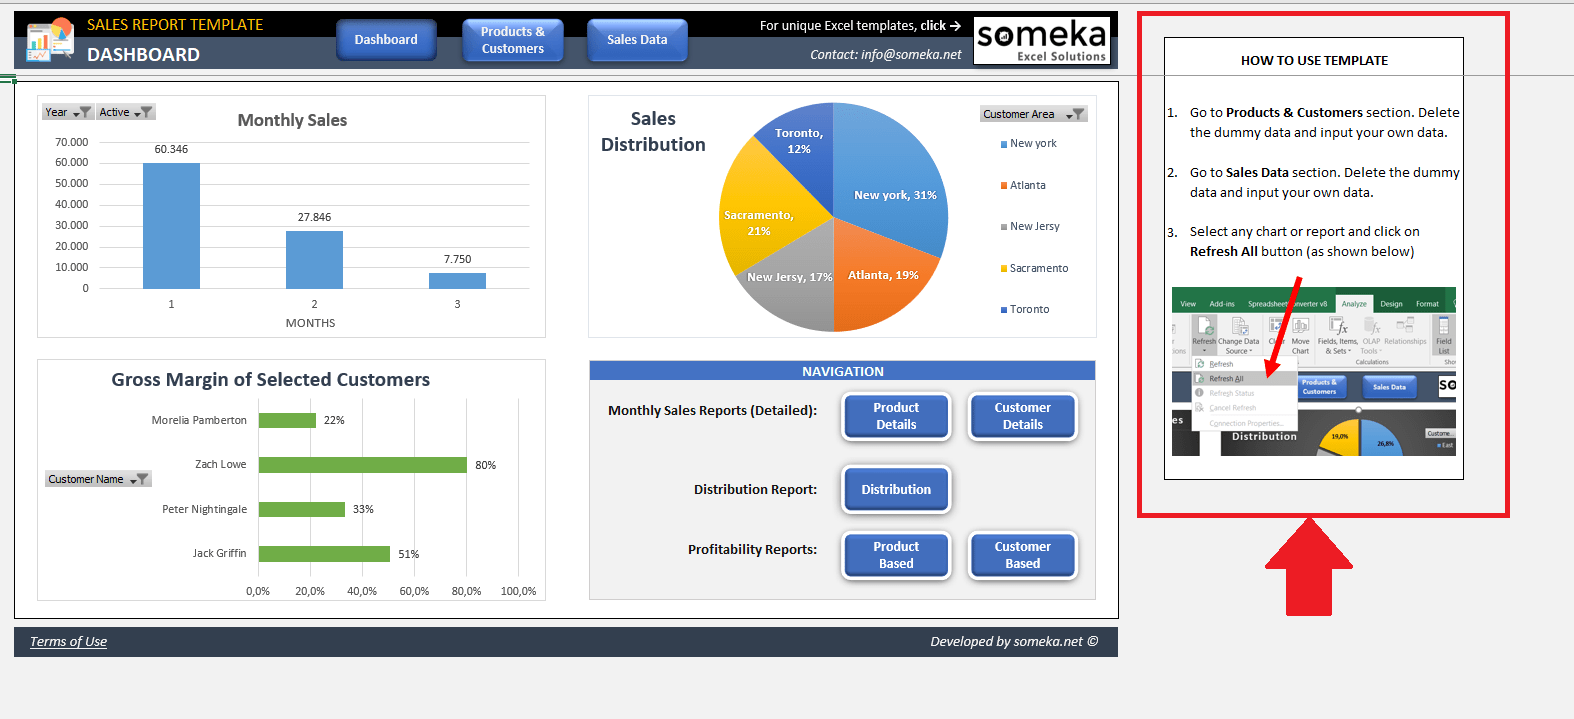 sales dashboard template comment pic1